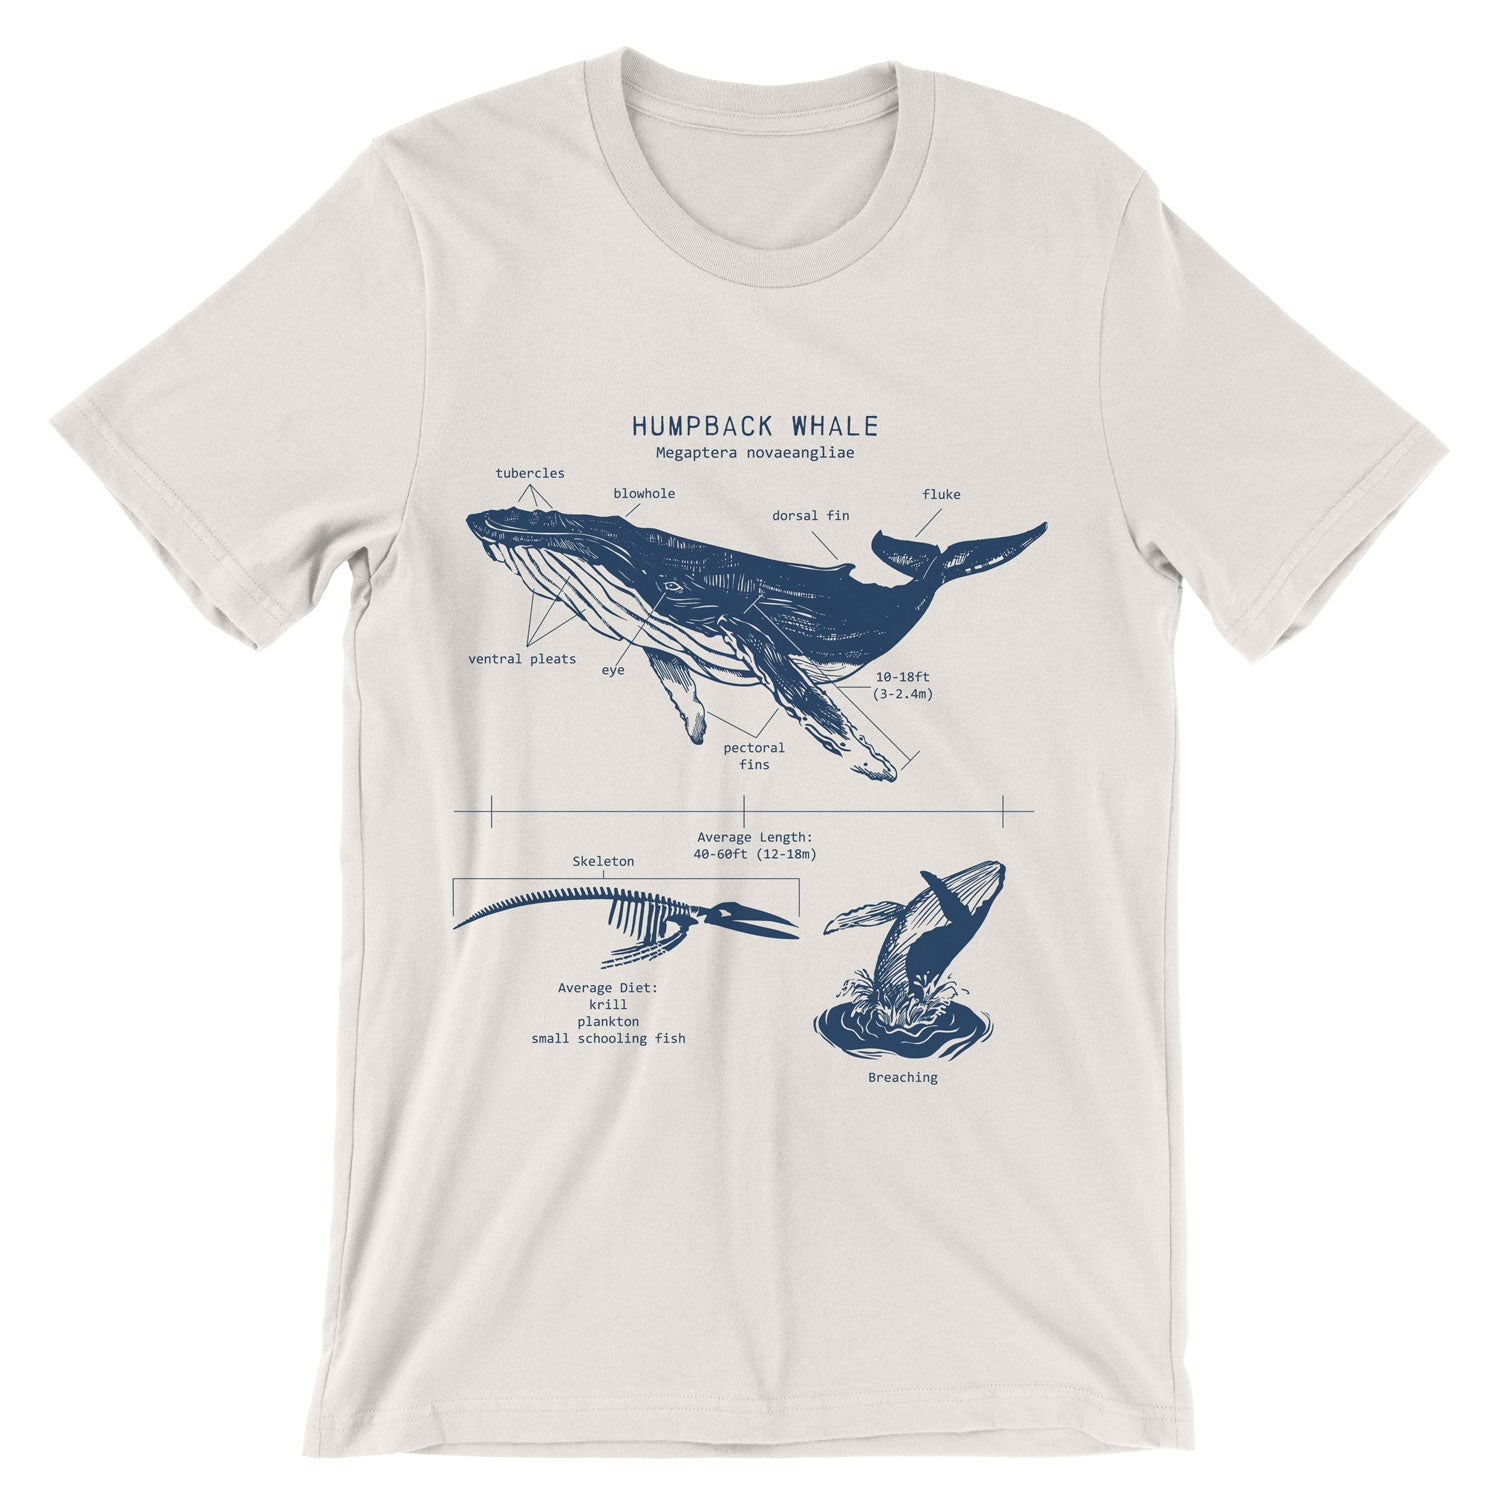 Humpback Whale Anatomy t-shirt